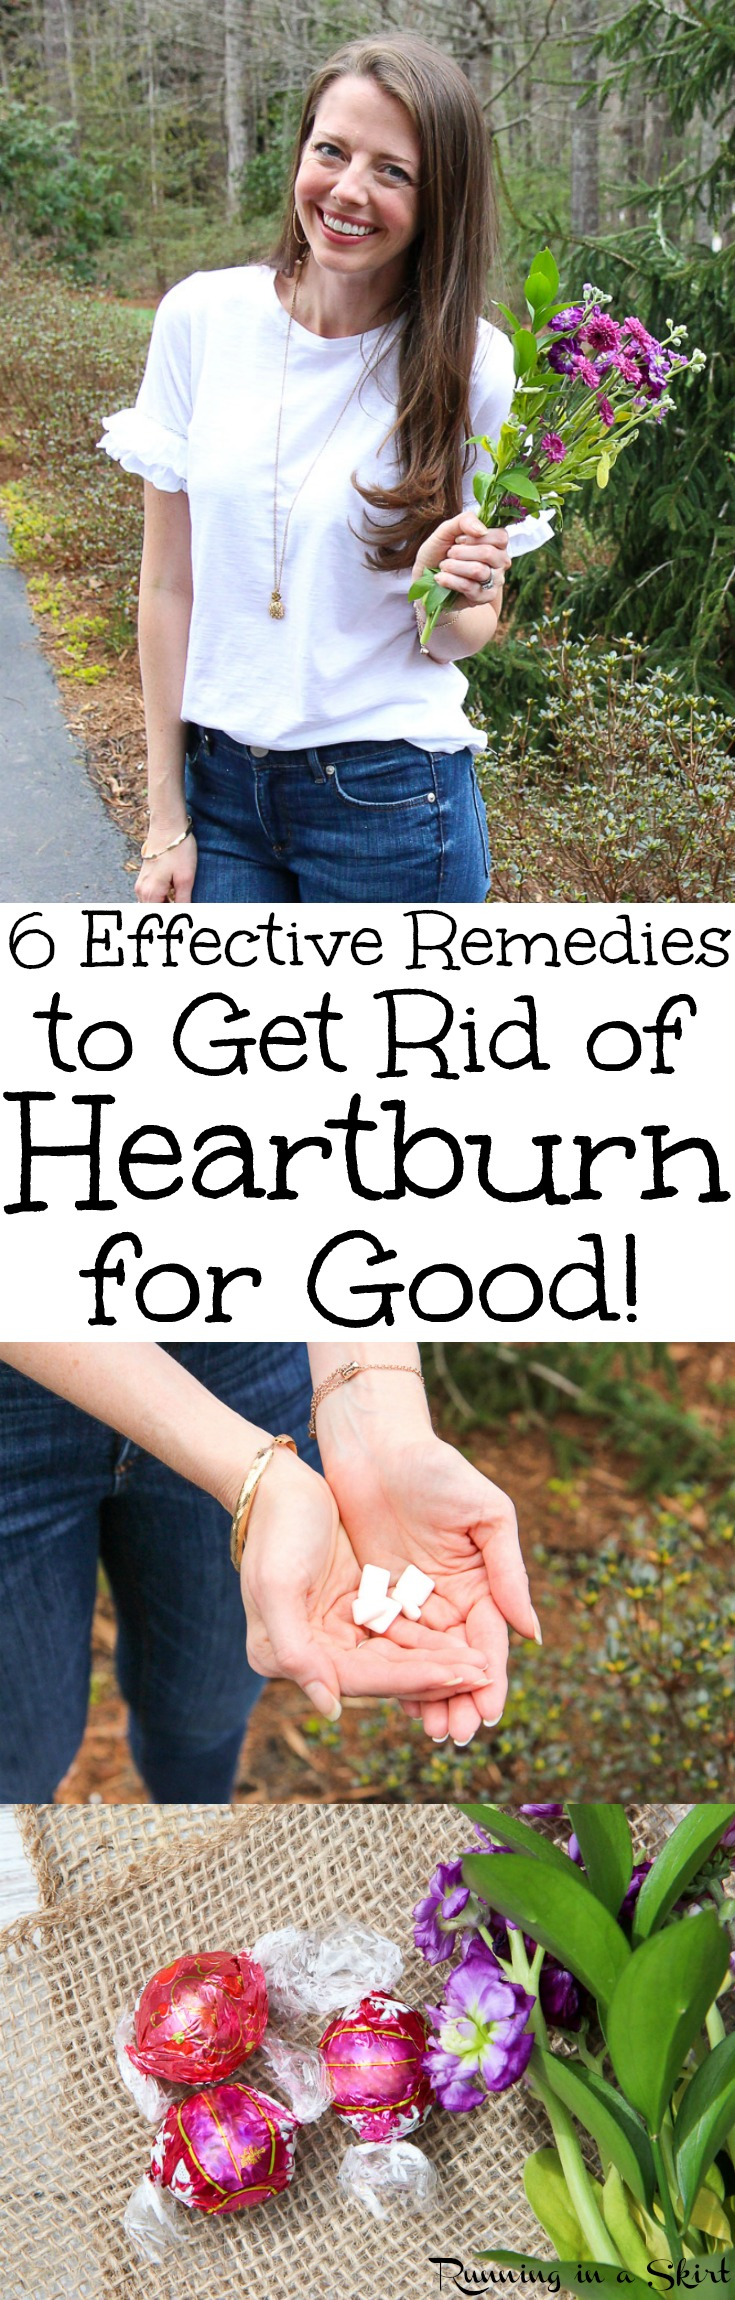 6 Effective Remedies for Heartburn Relief - How to Get Rid of Heartburn Symptoms for Good including triggers, diet ideas, home remedies, and the best medicine and medication to relieve the severe pain in back of your throat and improve your overall health. / Running in a Skirt AD via @juliewunder